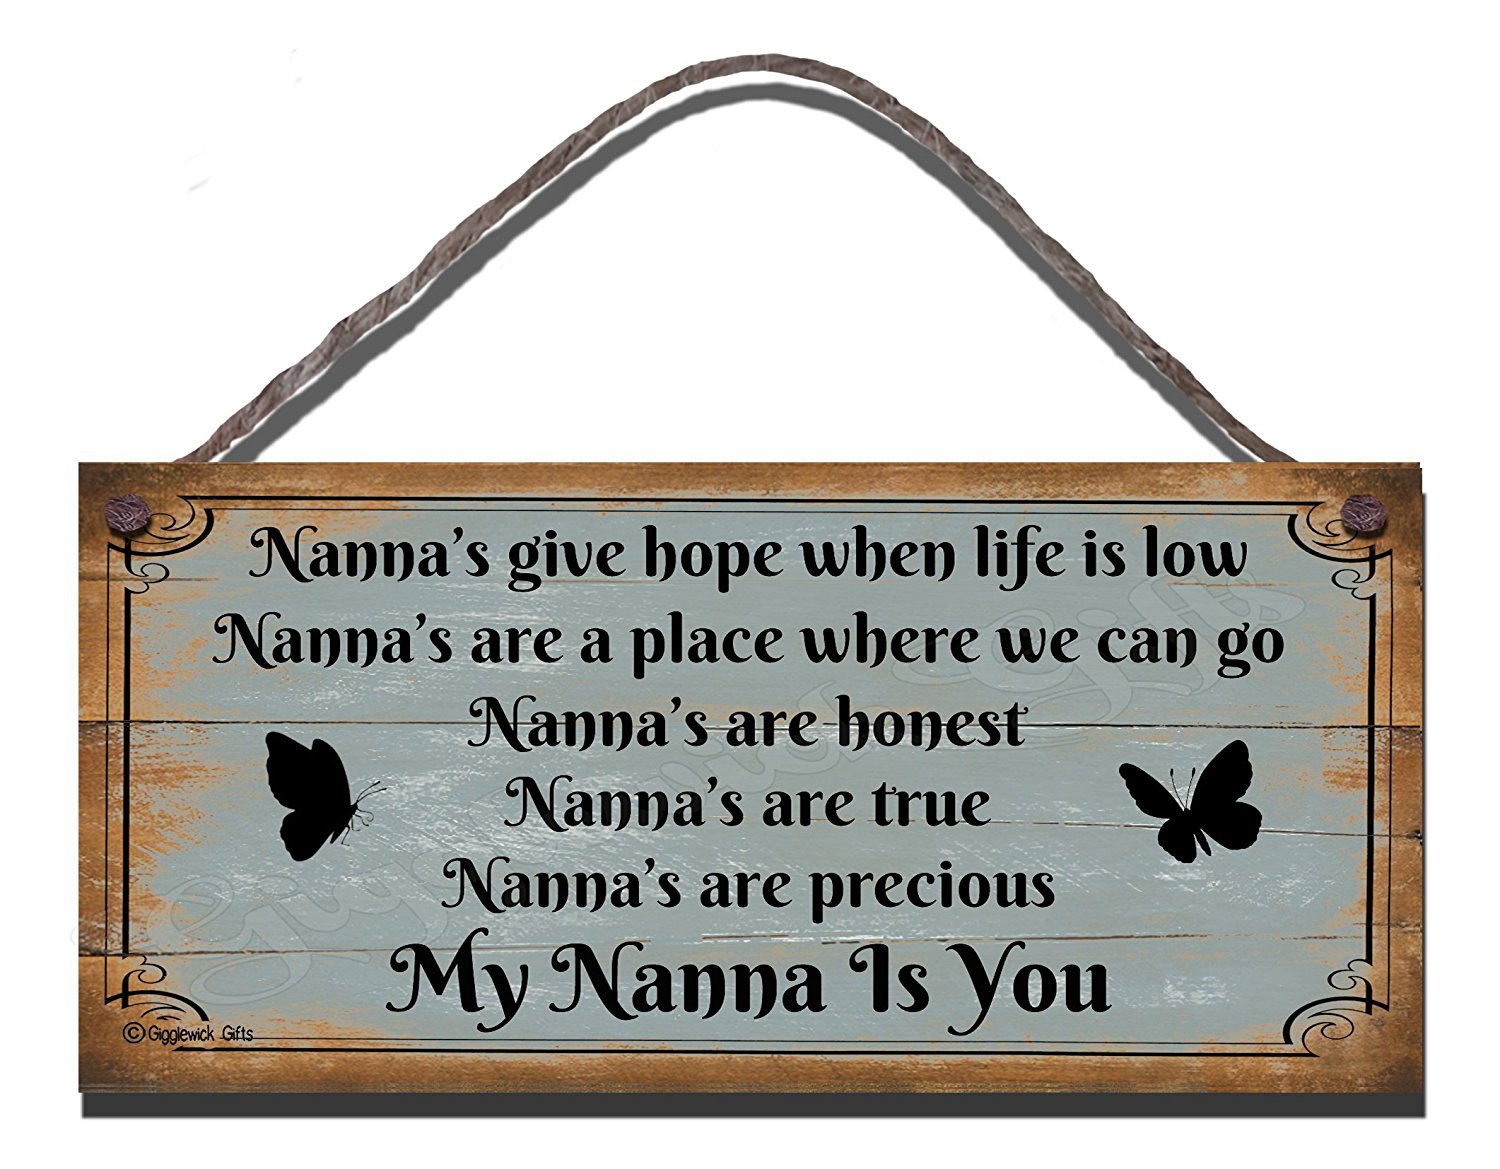 Nannas Give Hope When Life Is Low